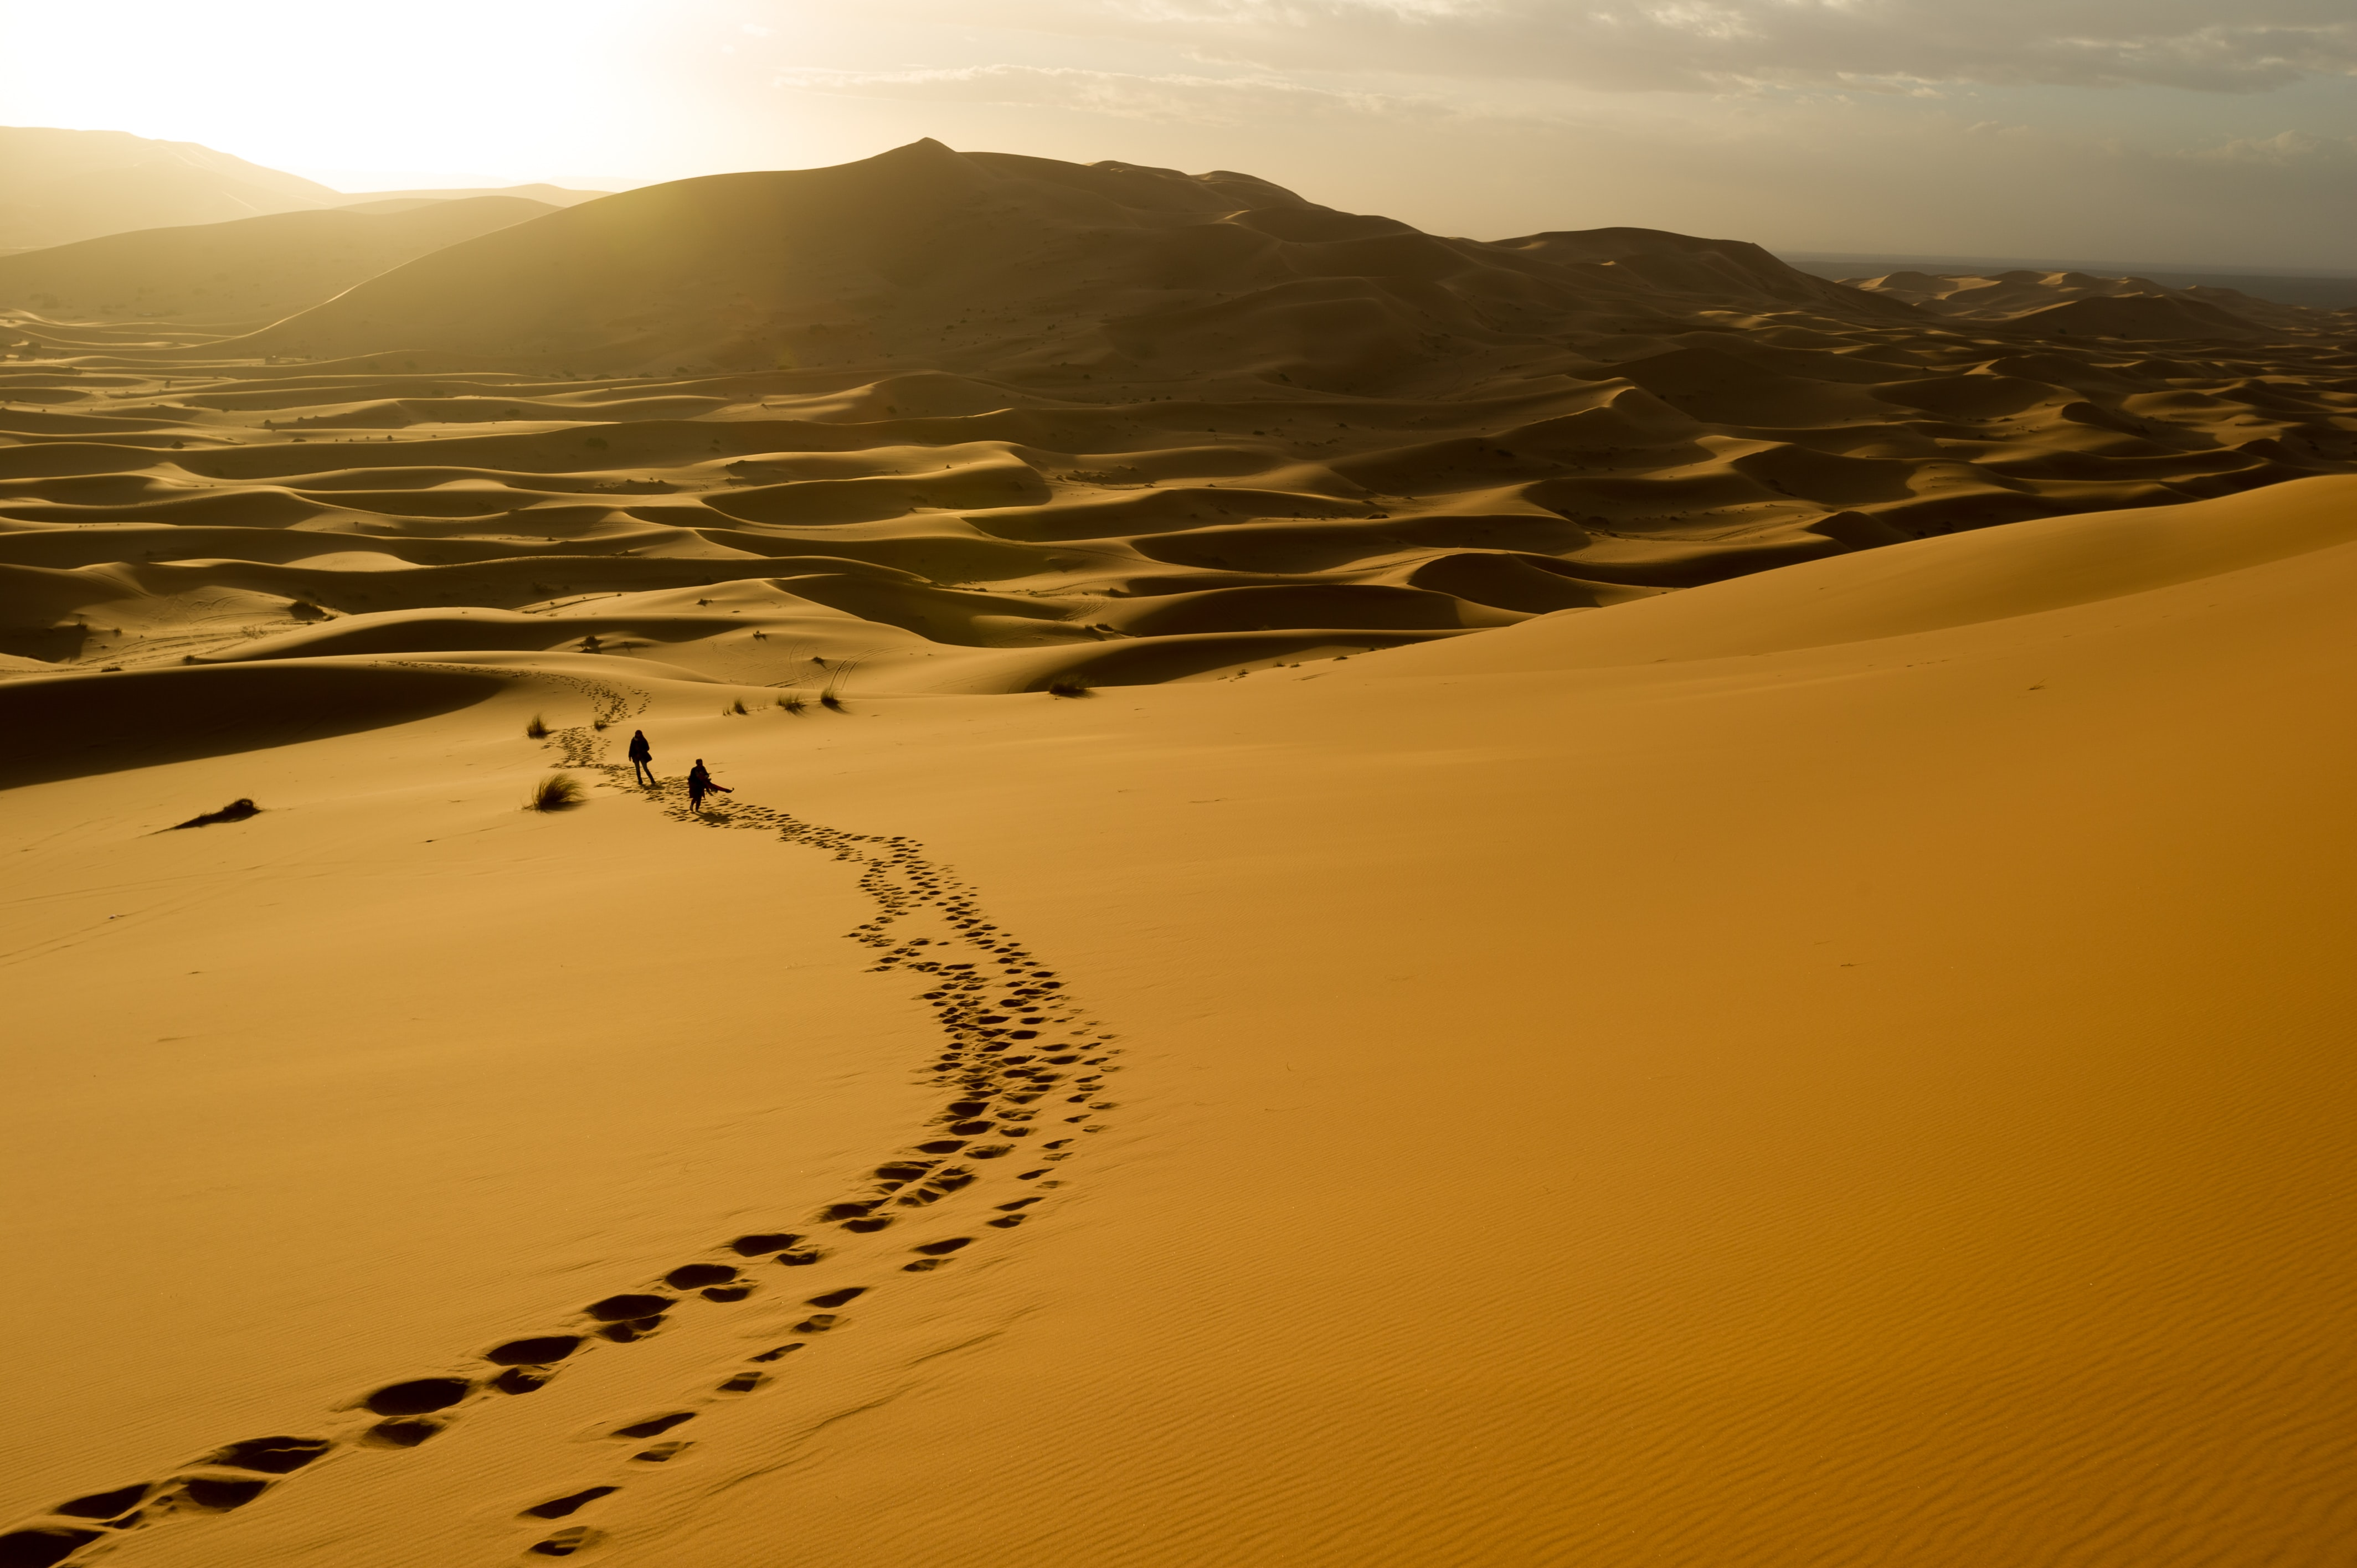 Silhouettes of two people walking along a trail of footprints in a scorching desert